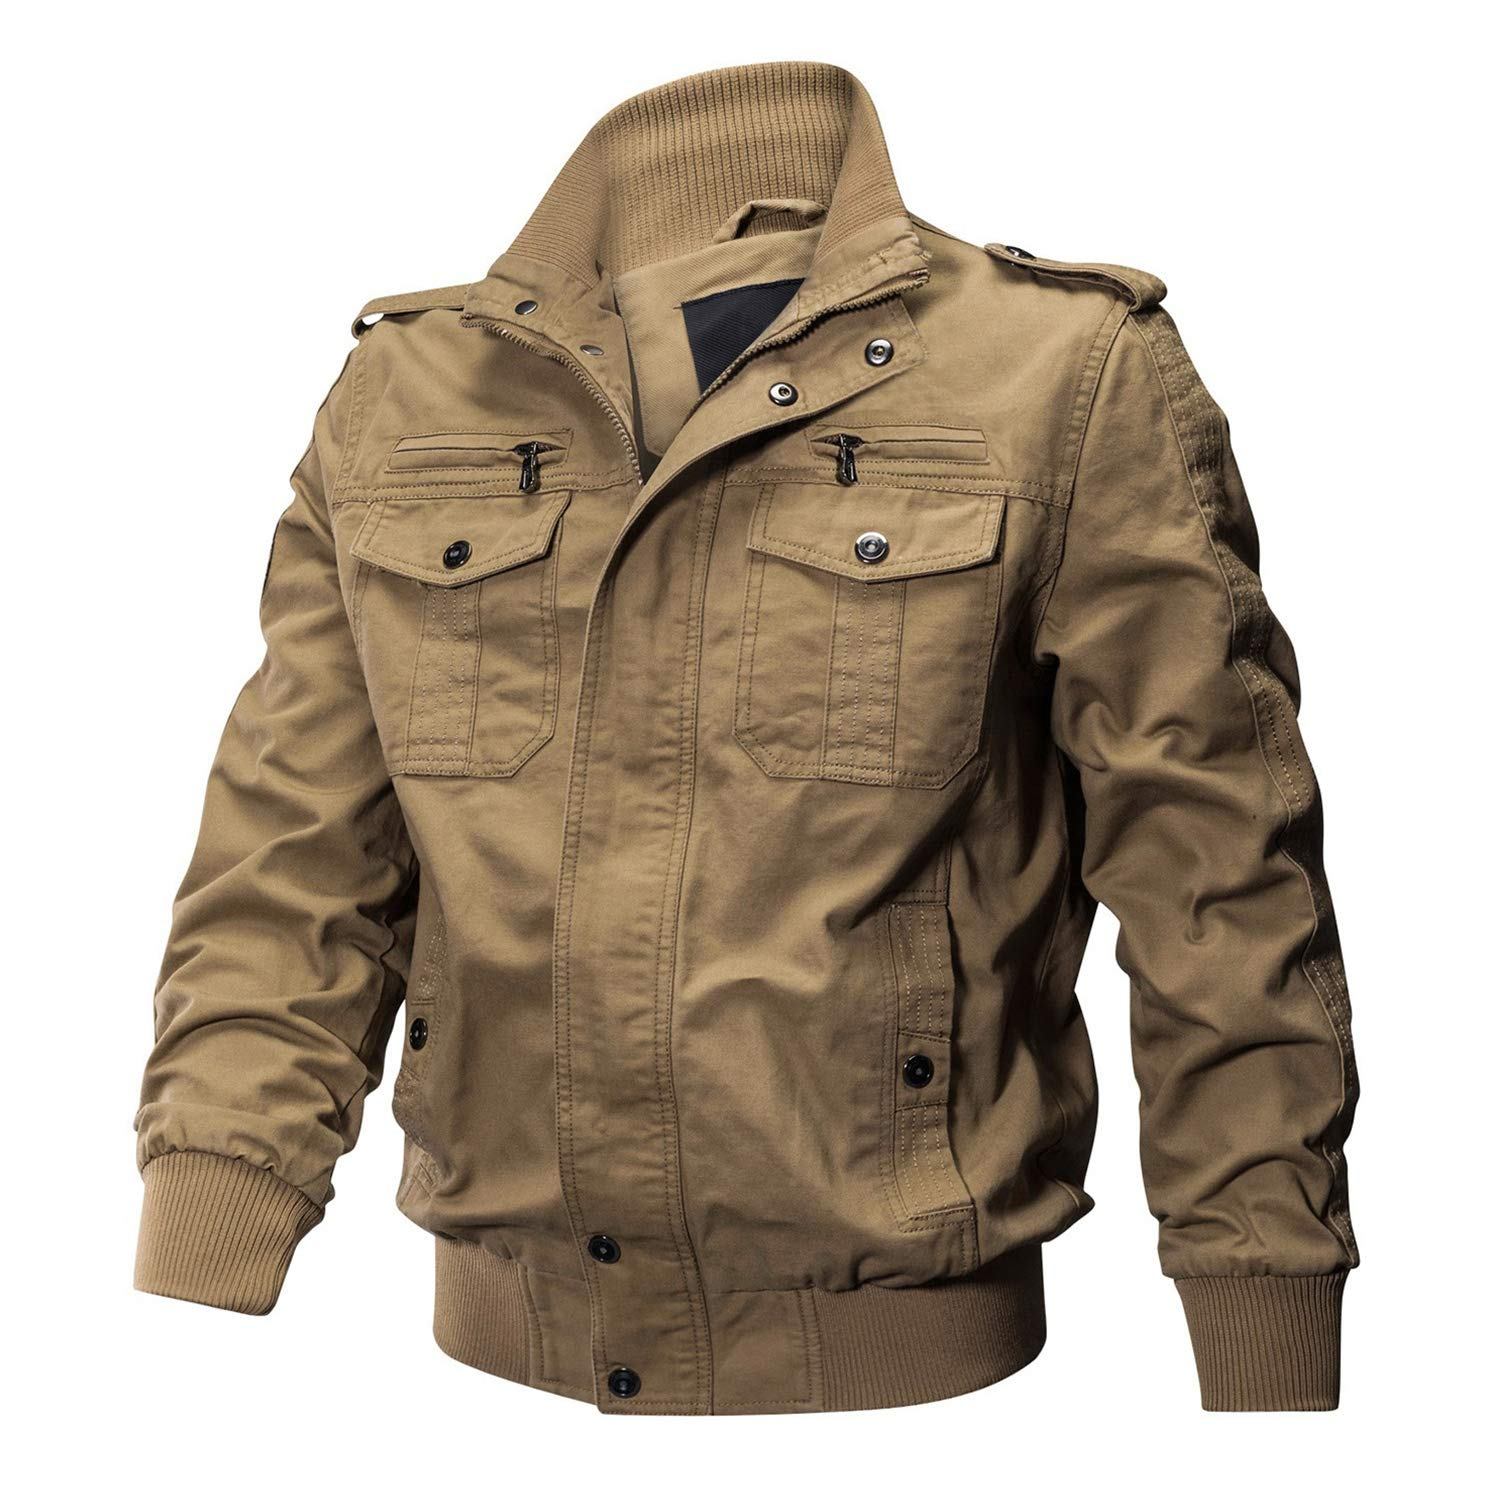 CRYSULLY Men's Spring Fall Windproof Air Force Coat Cargo Cotton Utility Full Zip Military Jacket Khaki by CRYSULLY